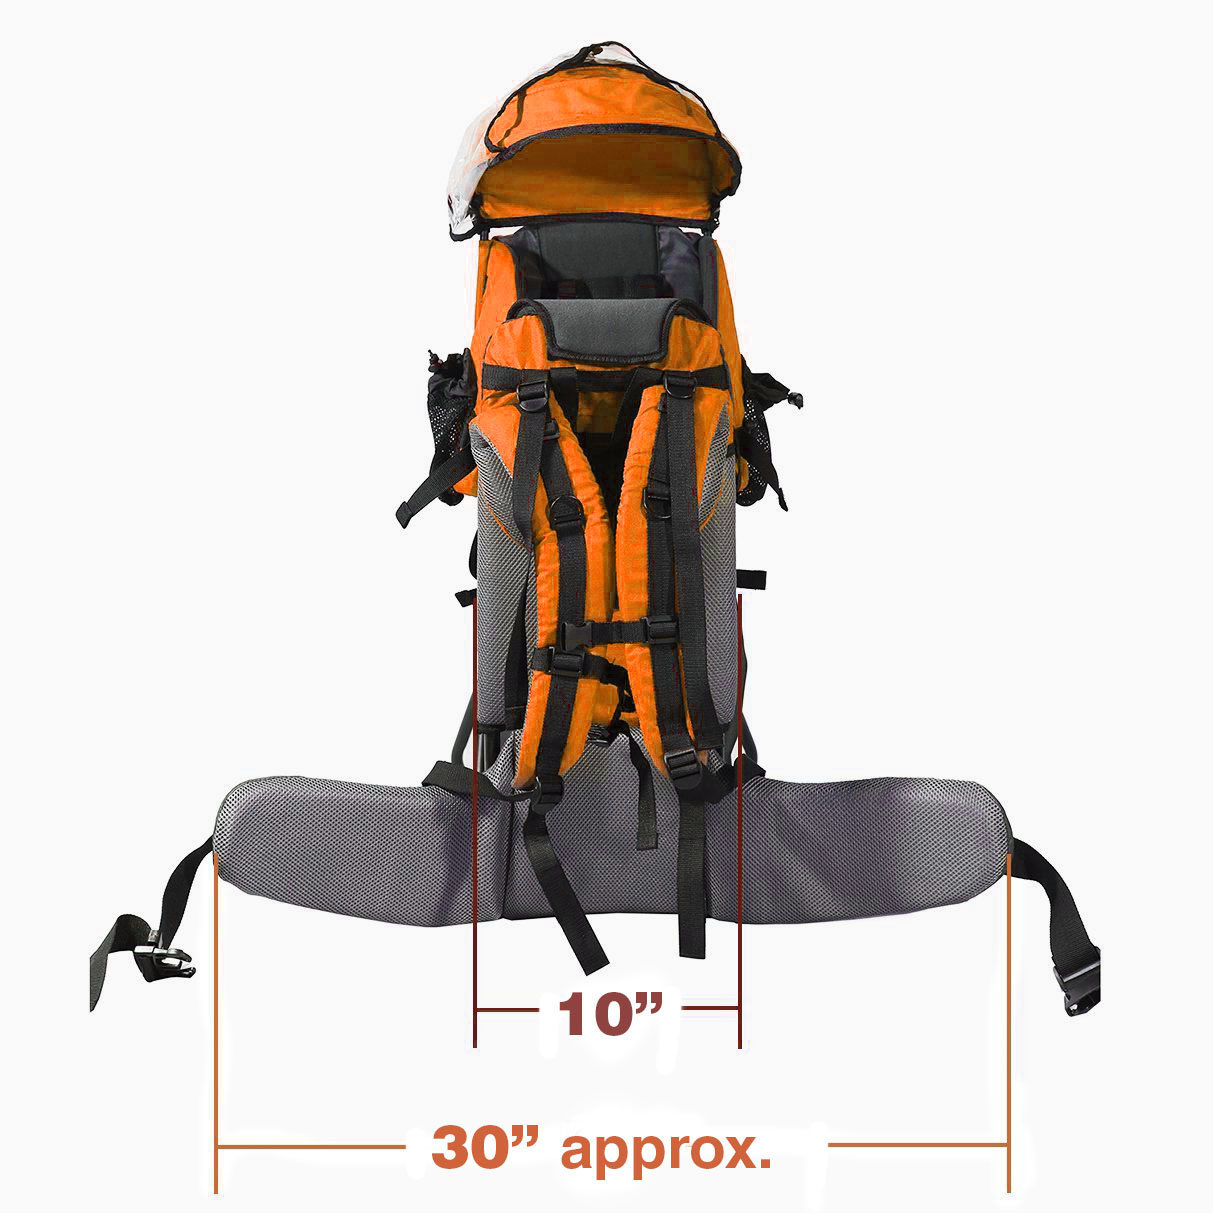 cfef6029897 Clevr Cross Country Lightweight Toddler Baby Backpack Hiking Child Carrier